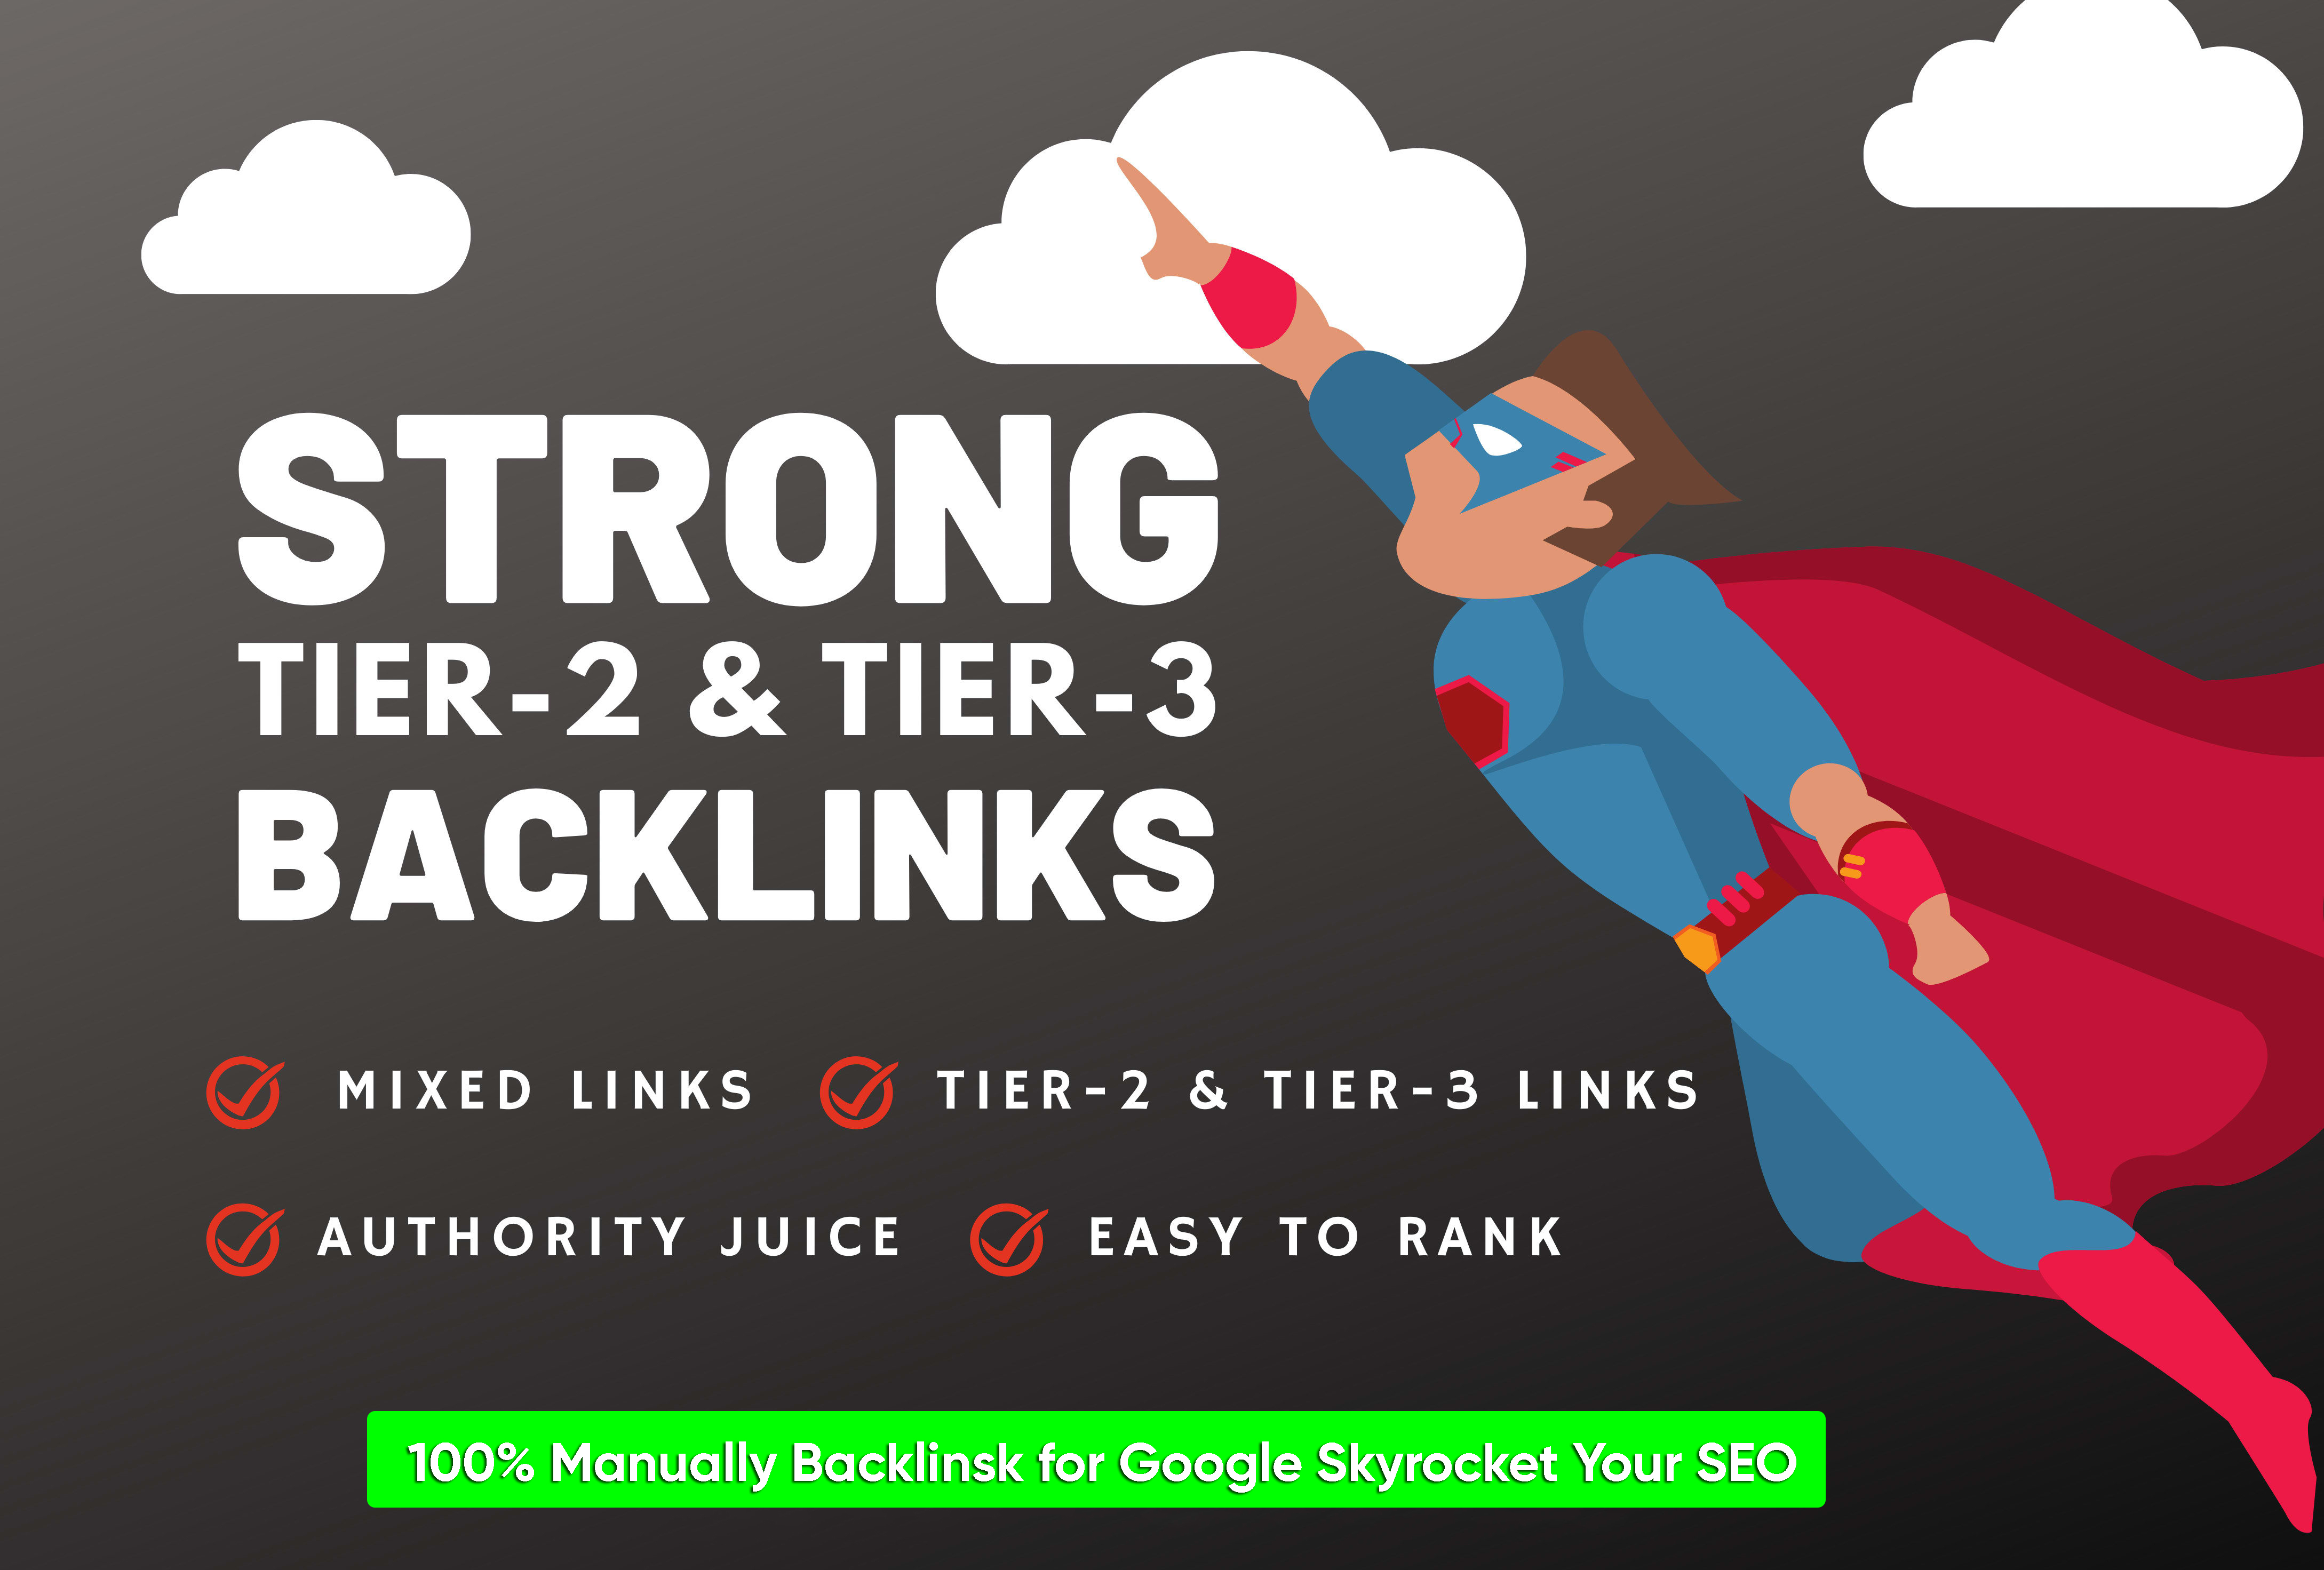 provide 200 tier2 High Quality Backlinks and 10100 tier3 backlinks for fast ranking